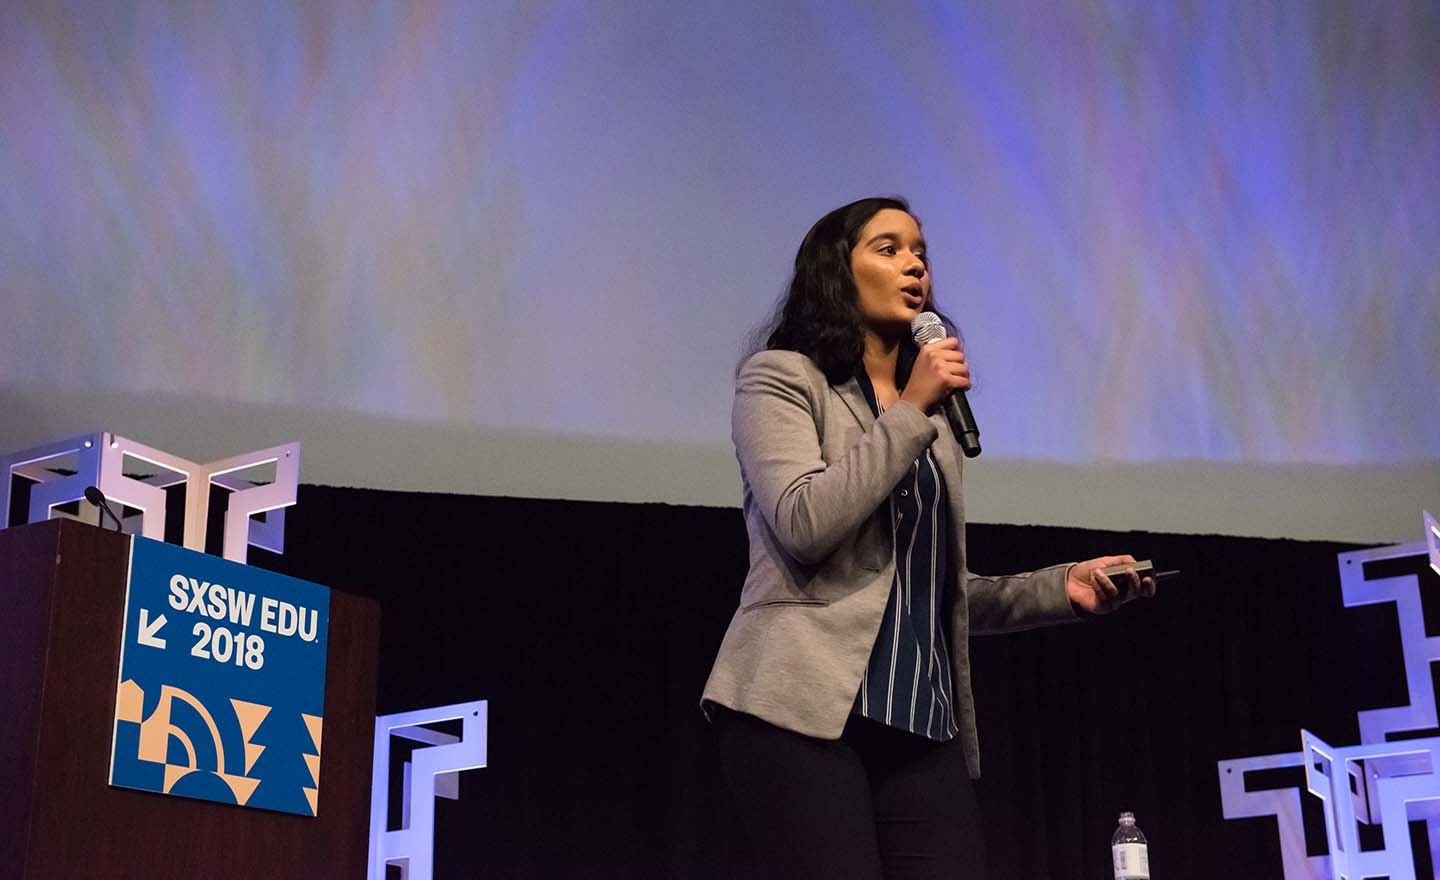 SXSW EDU 2018 Student Startup competition by Amanda Stronza